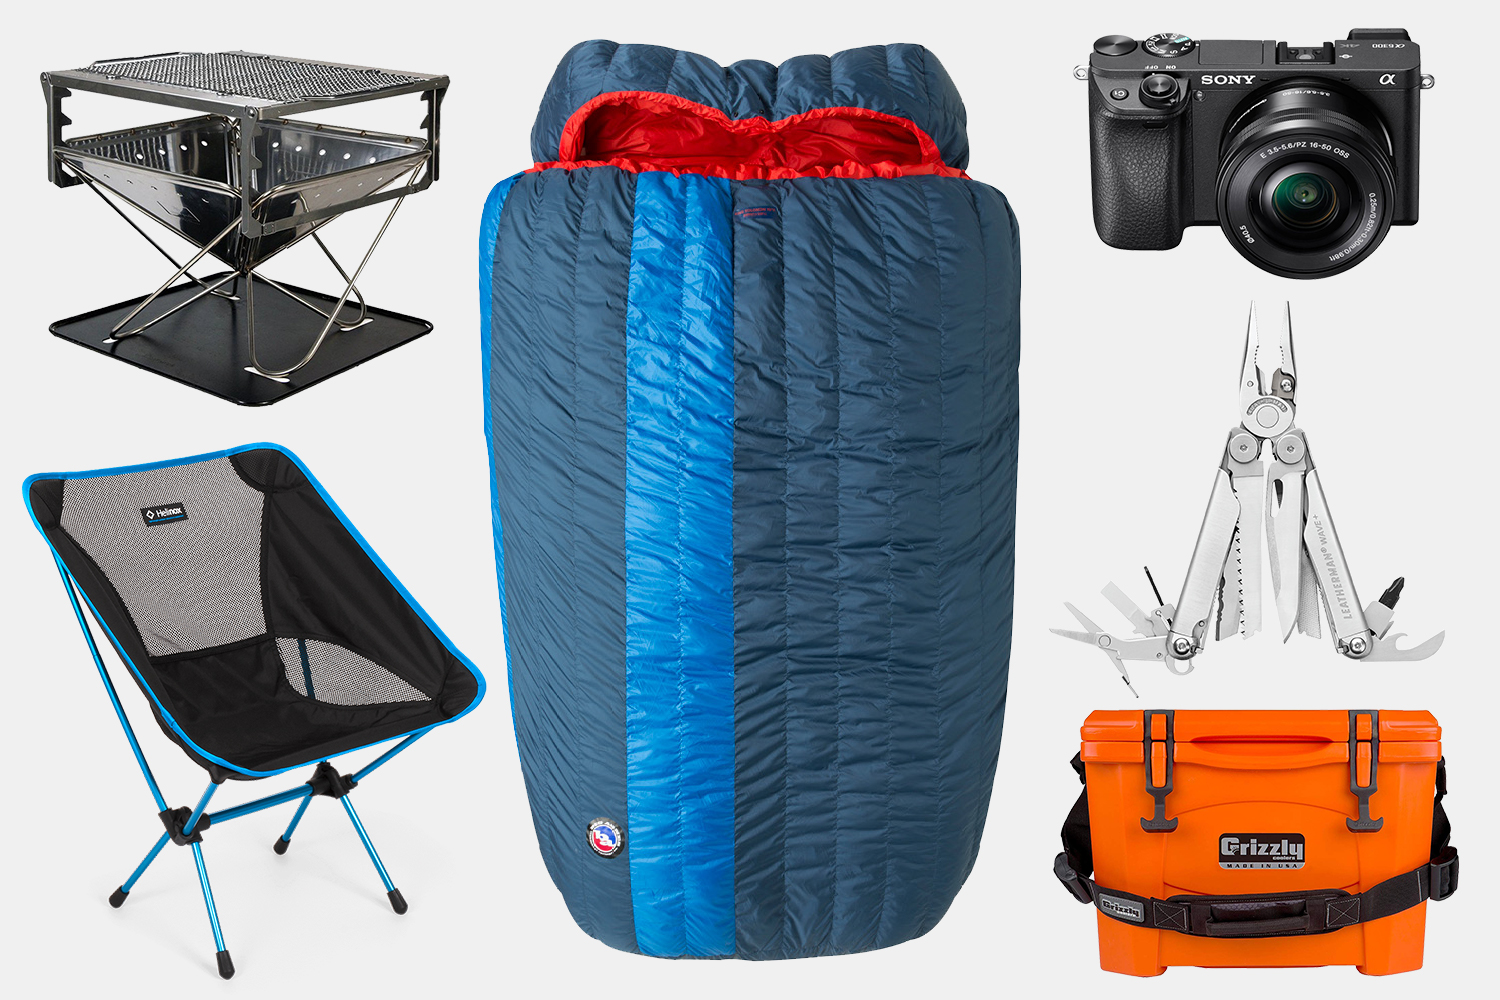 A camp stove, Helinox camp chair, double sleeping bag, digital camera, Leatherman multitool and orange cooler, all part of the car camping gear Brock Keen brings when adventuring in his Porsche 996 C4S